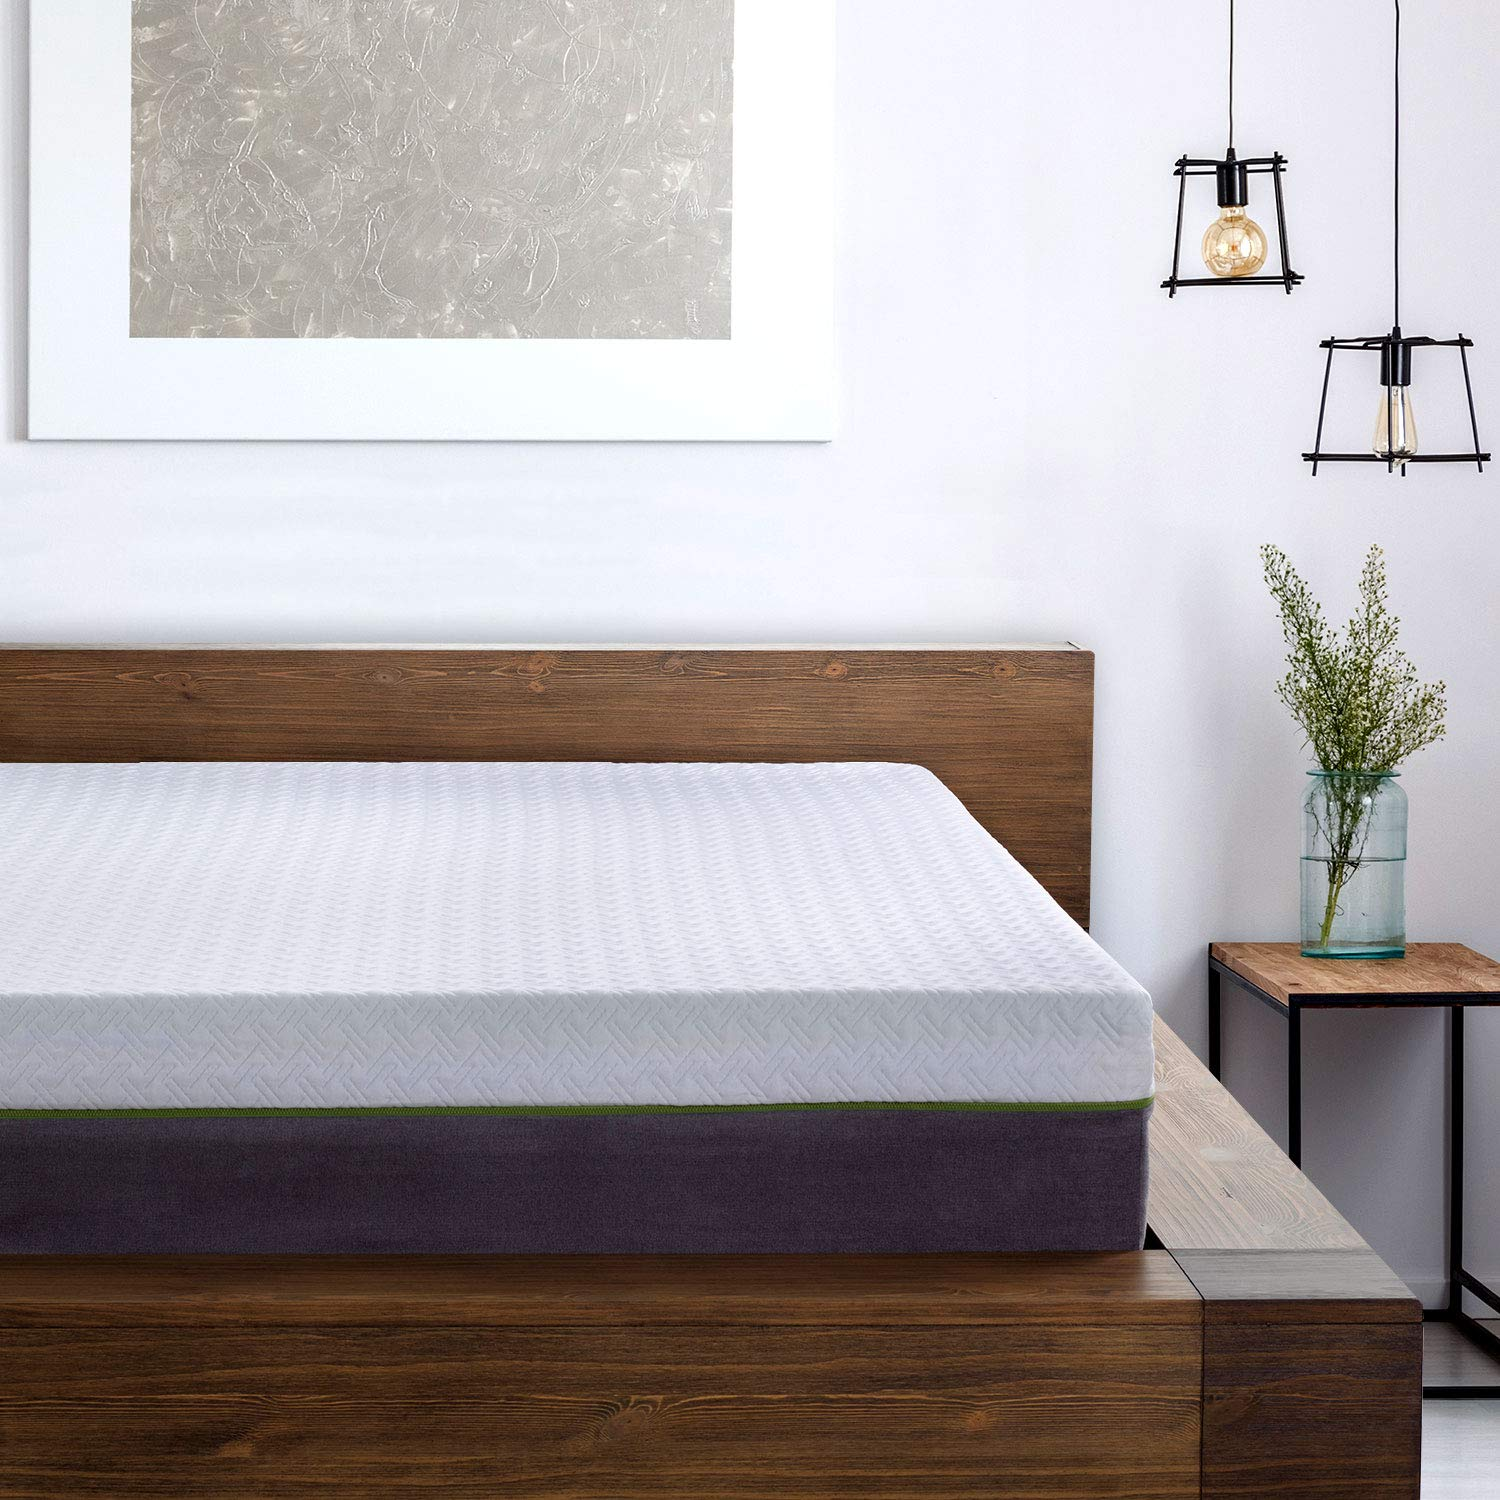 12 Inch Twin XL Copper Infused Cool Memory Foam Mattress Developed for Adjustable Bed Bases with Medium Firm Feel Support and CertiPUR-US Certified (Purchase 2 to for a Split King) by Blissful Nights